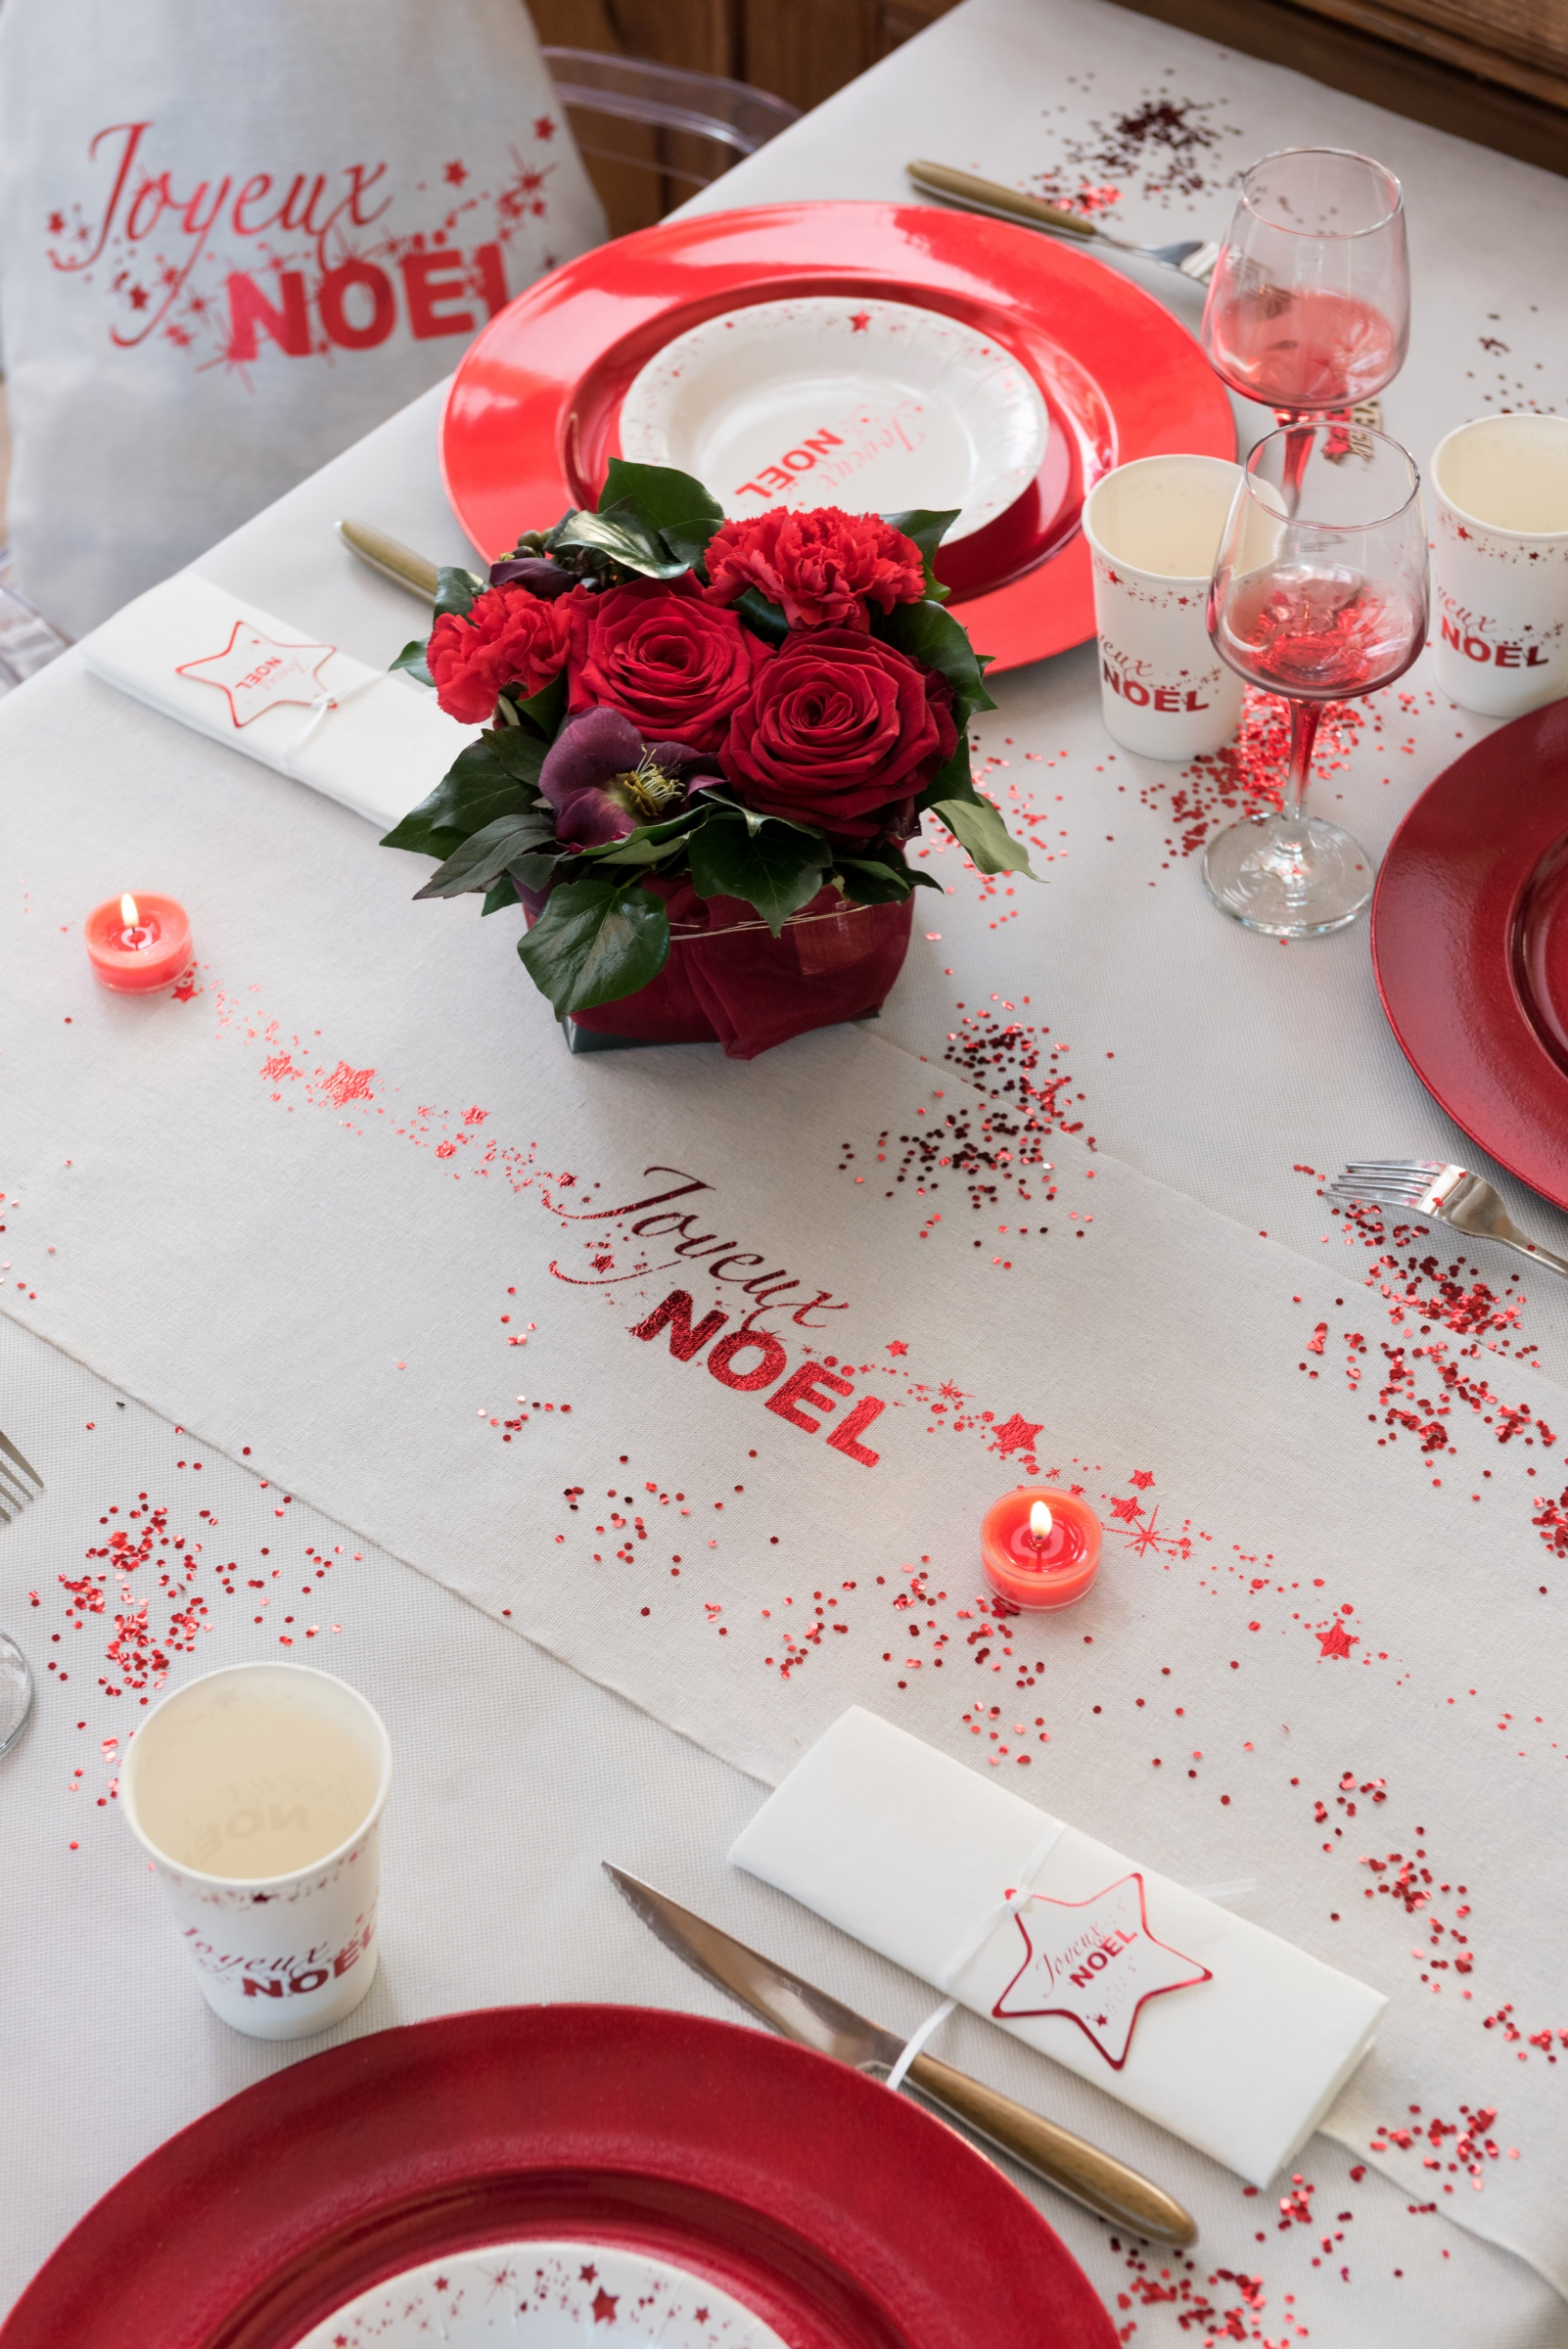 chemin de table en coton joyeux no l blanc et rouge 28 cm x 3 m d coration anniversaire et. Black Bedroom Furniture Sets. Home Design Ideas